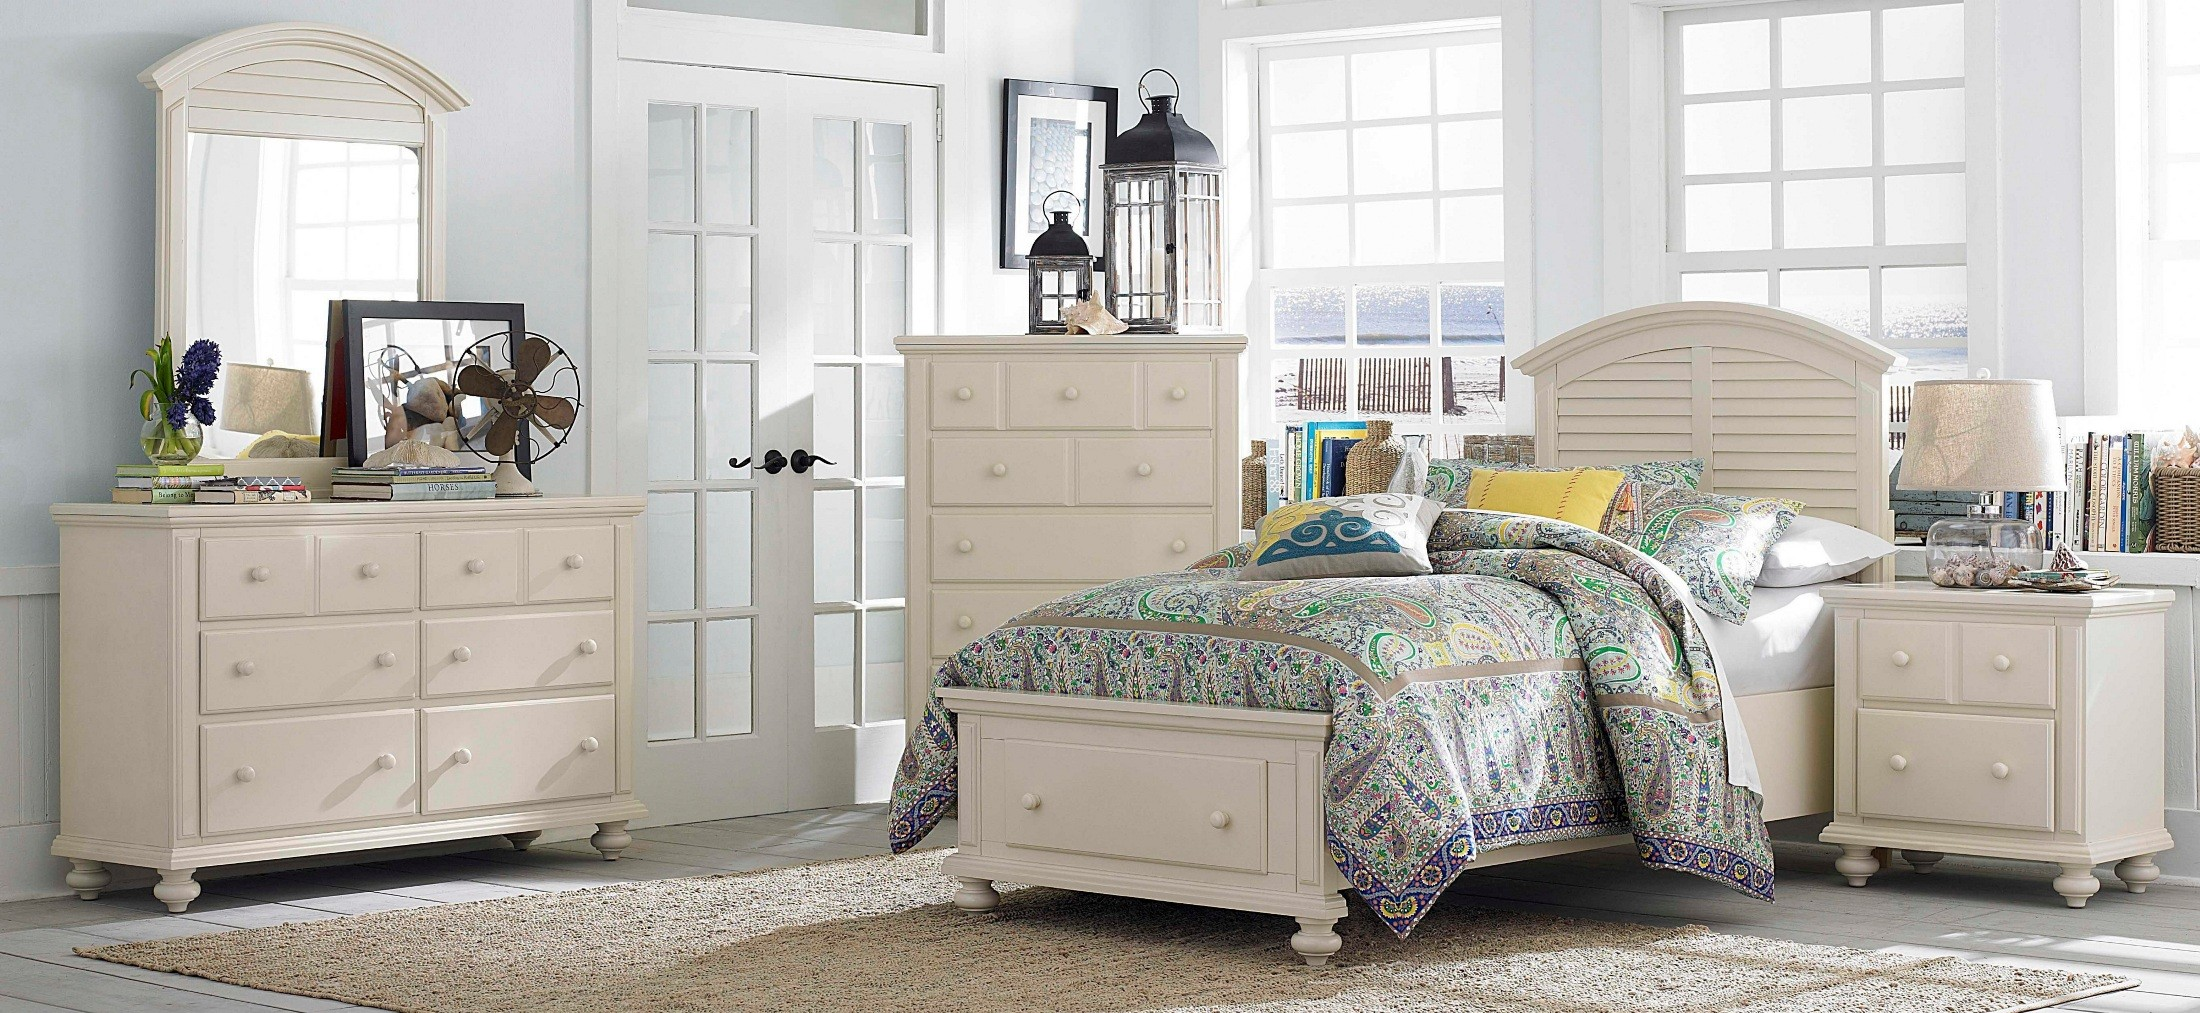 Seabrooke Storage Panel Bedroom Set From Broyhill 4471 250 253 460 Coleman Furniture